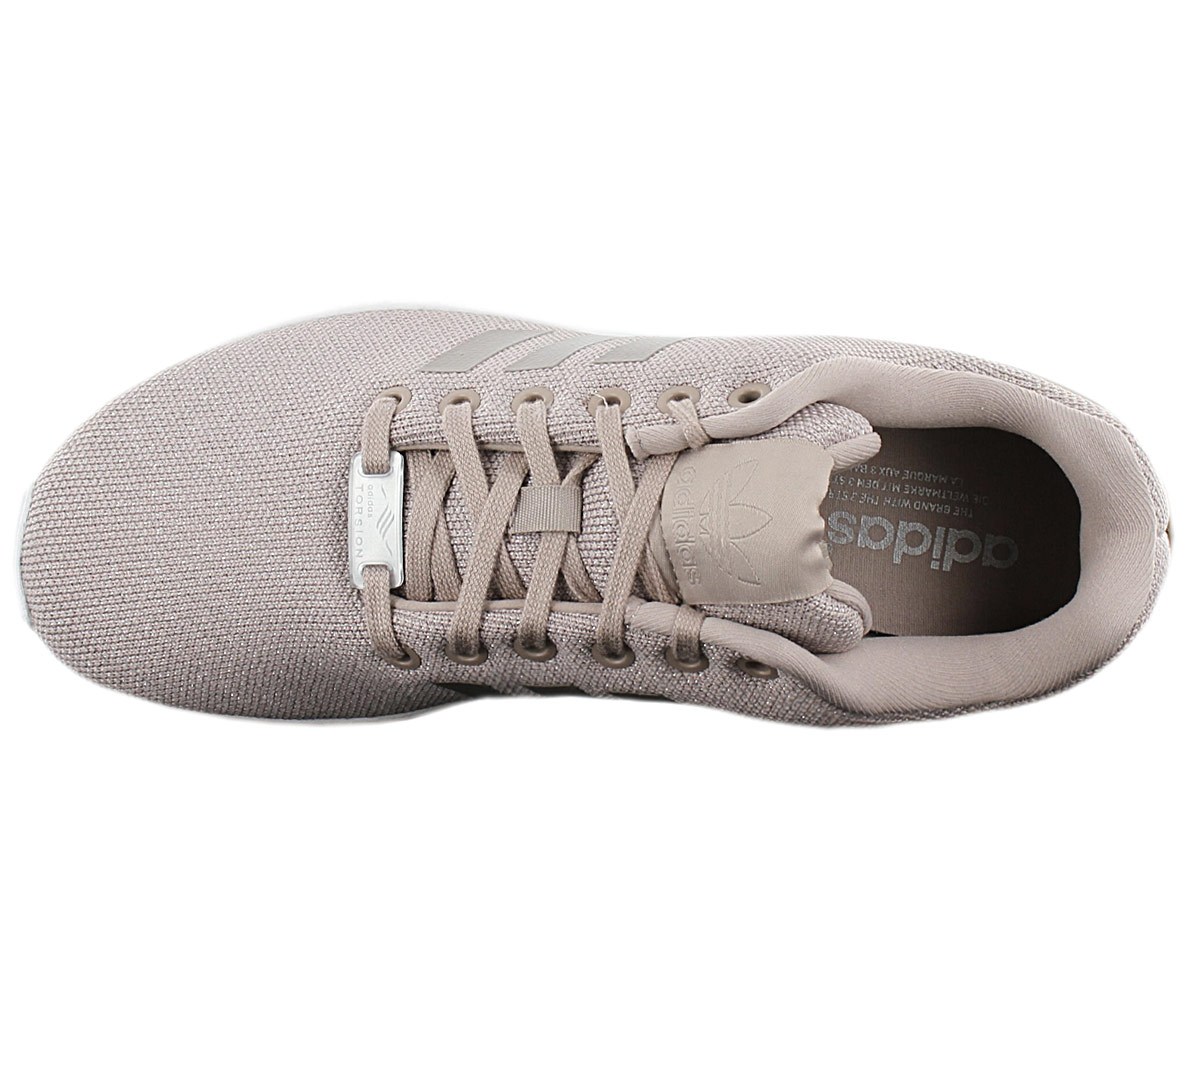 Details about Adidas Originals Zx Flux W Women's Sneaker BY9211 Brown Grey Shoes Sneakers New